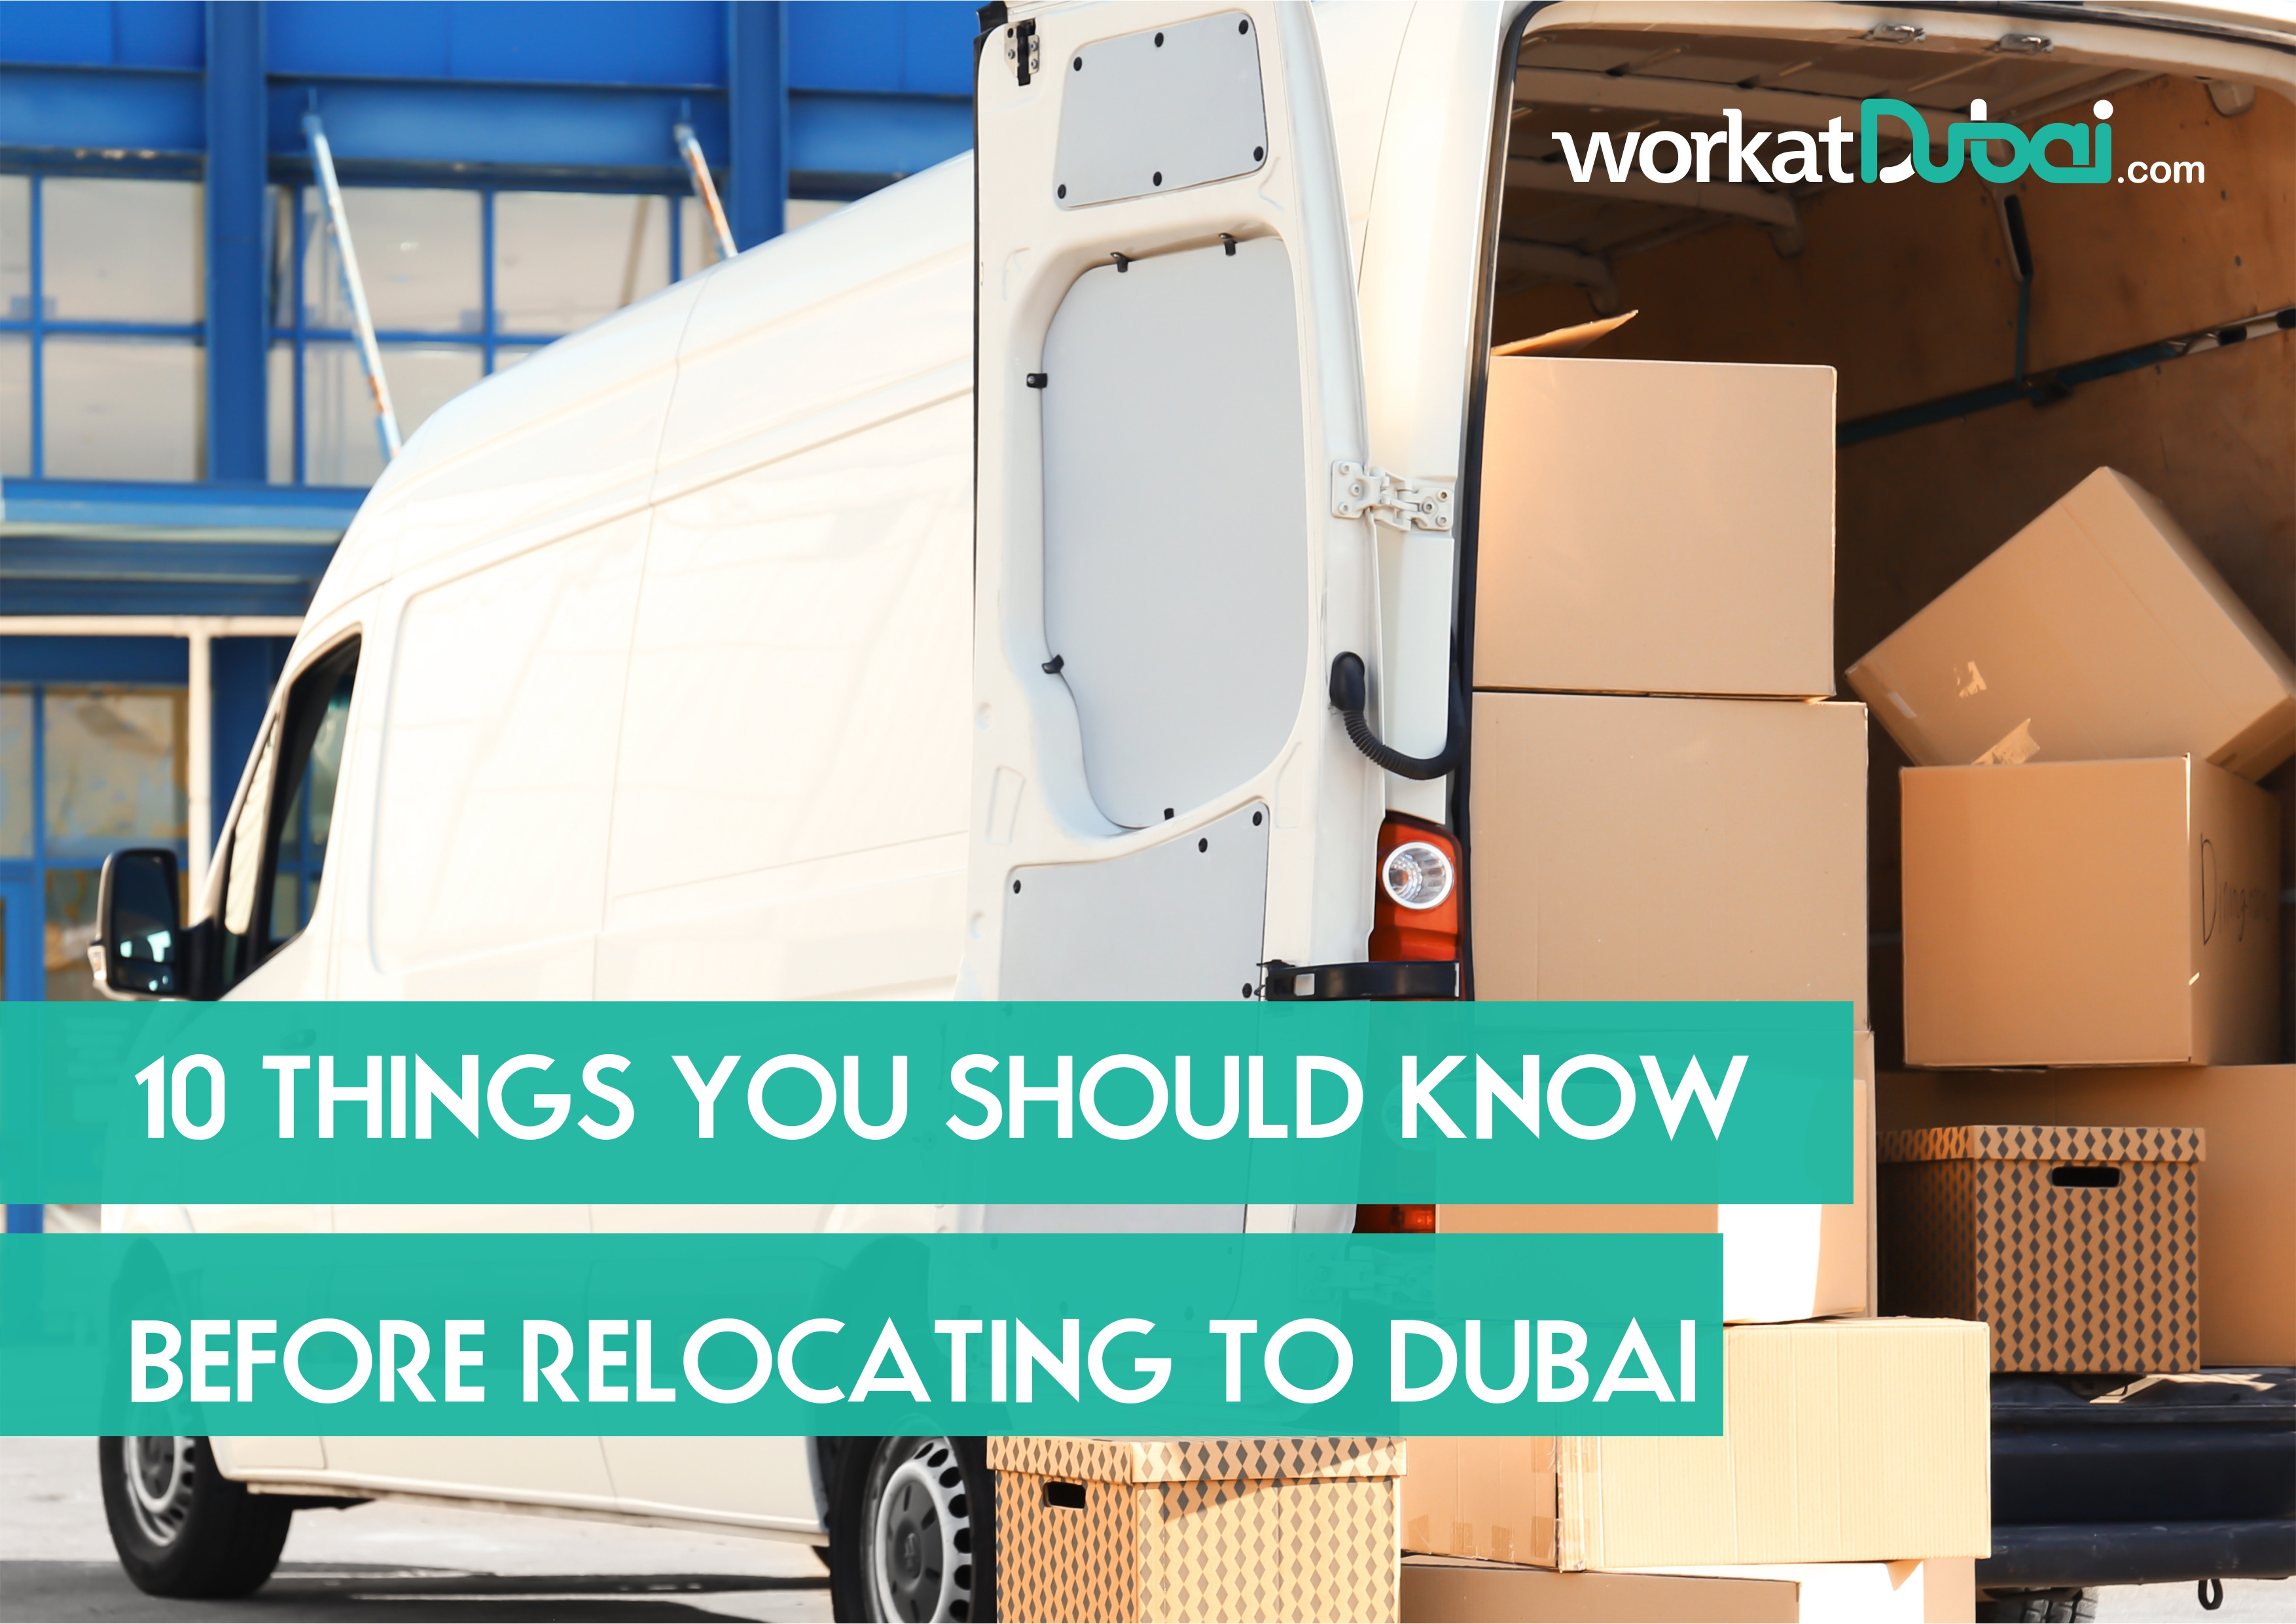 10 Things You Should Know Before Relocating To Dubai